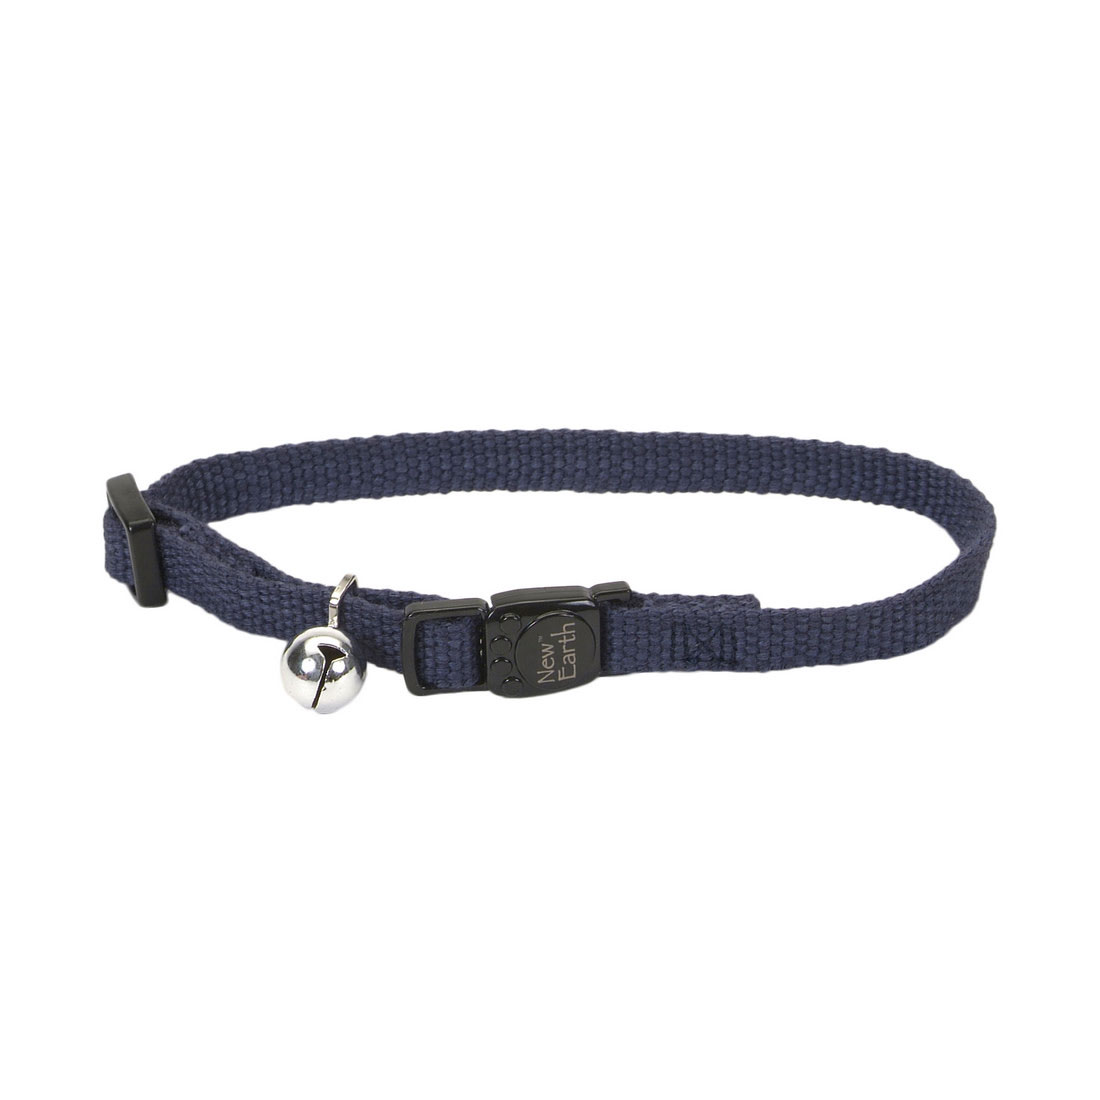 Coastal New Earth Soy Adjustable Breakaway Cat Collar, Indigo, 8-12-in (Size: 8-12-in) Image